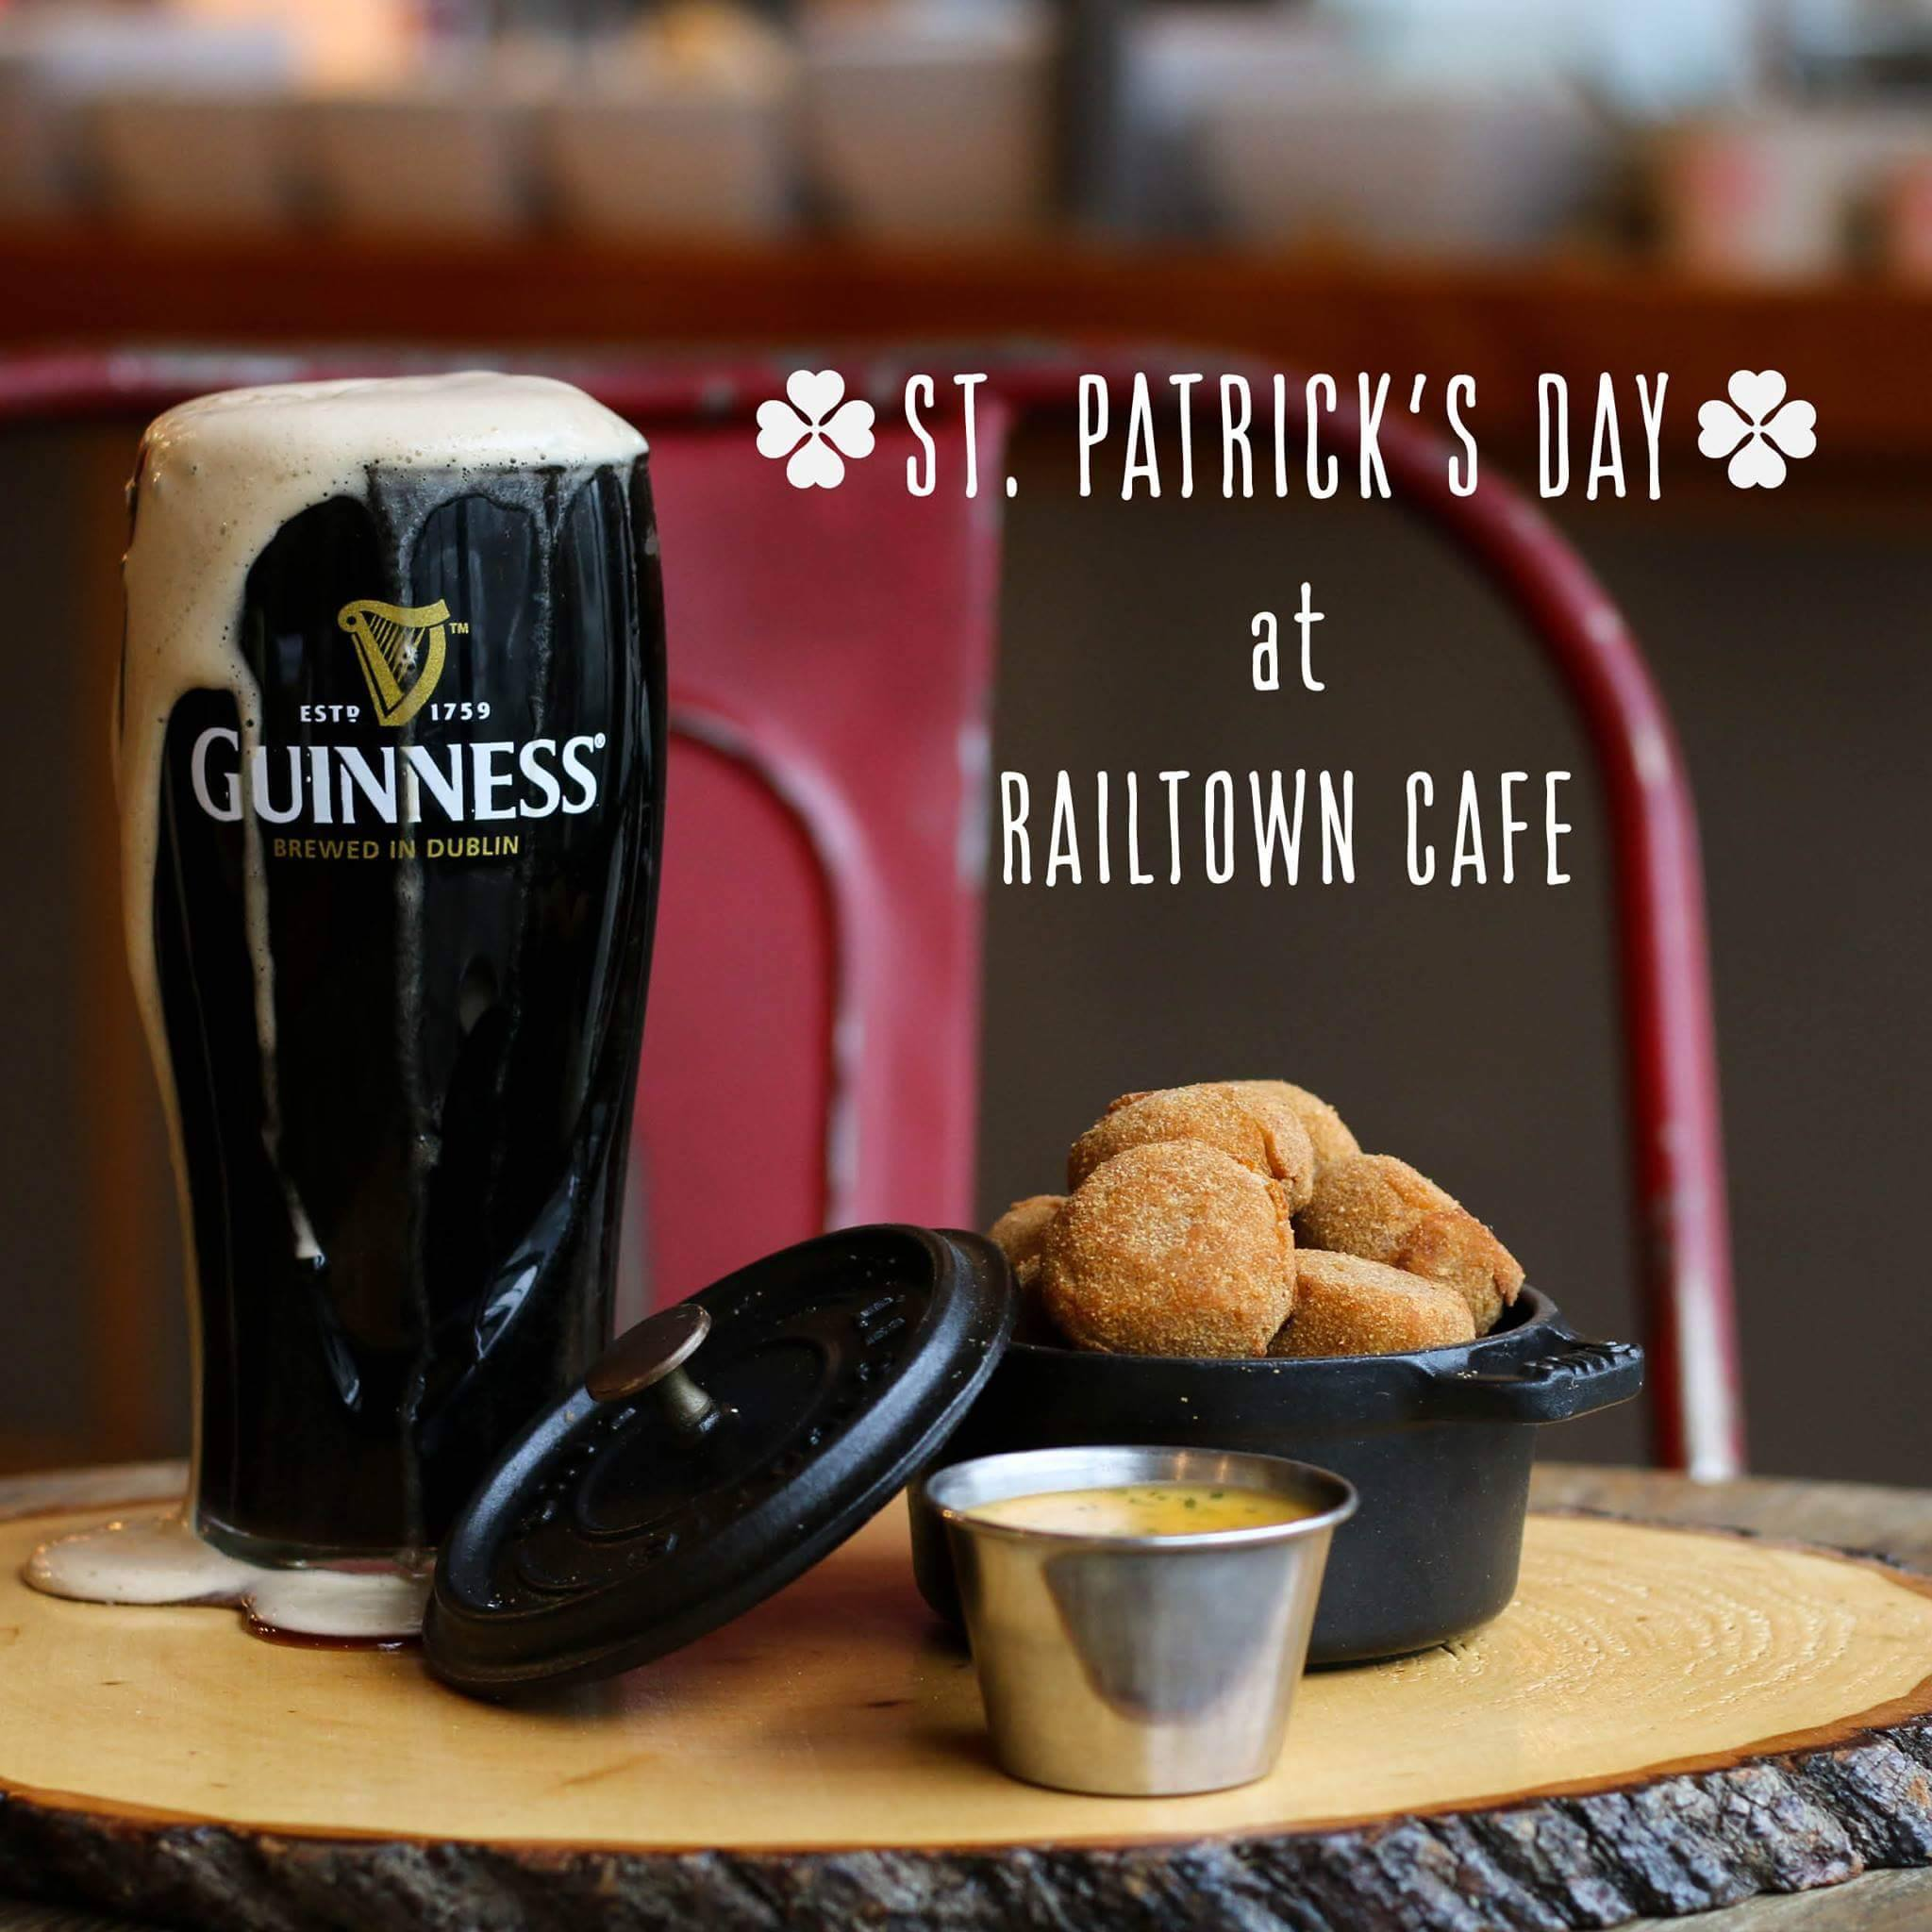 Canadian cafe apologises for butchered pint of Guinness